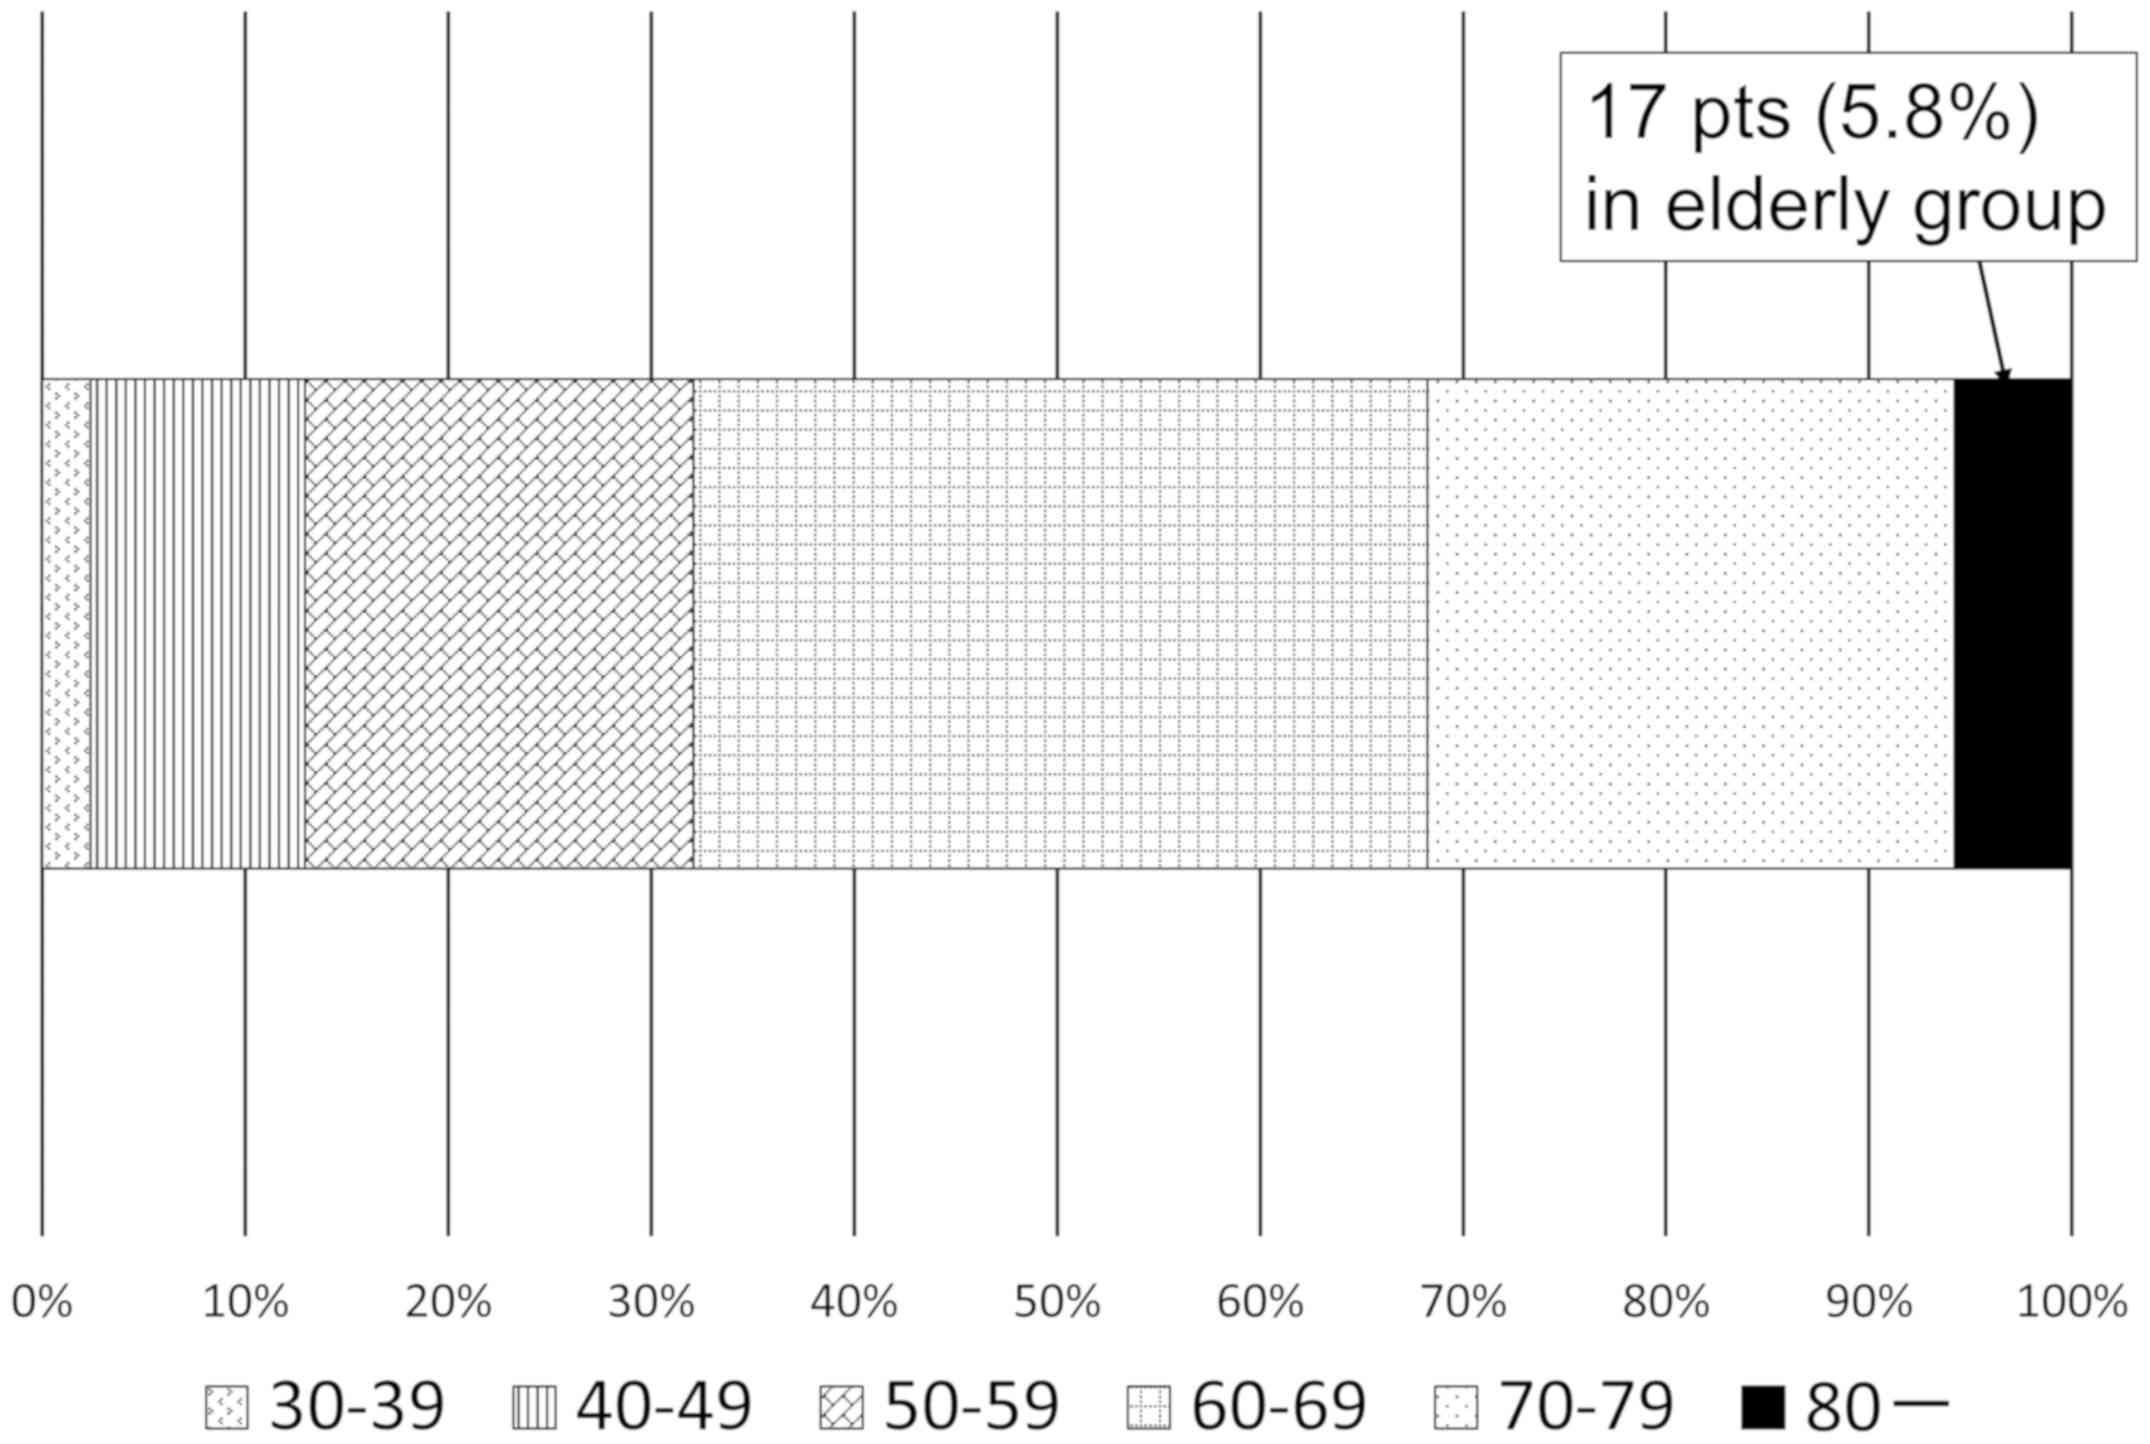 Clinical Outcomes Of Preoperative Chemoradiotherapy In Octogenarian With Locally Advanced Rectal Cancer